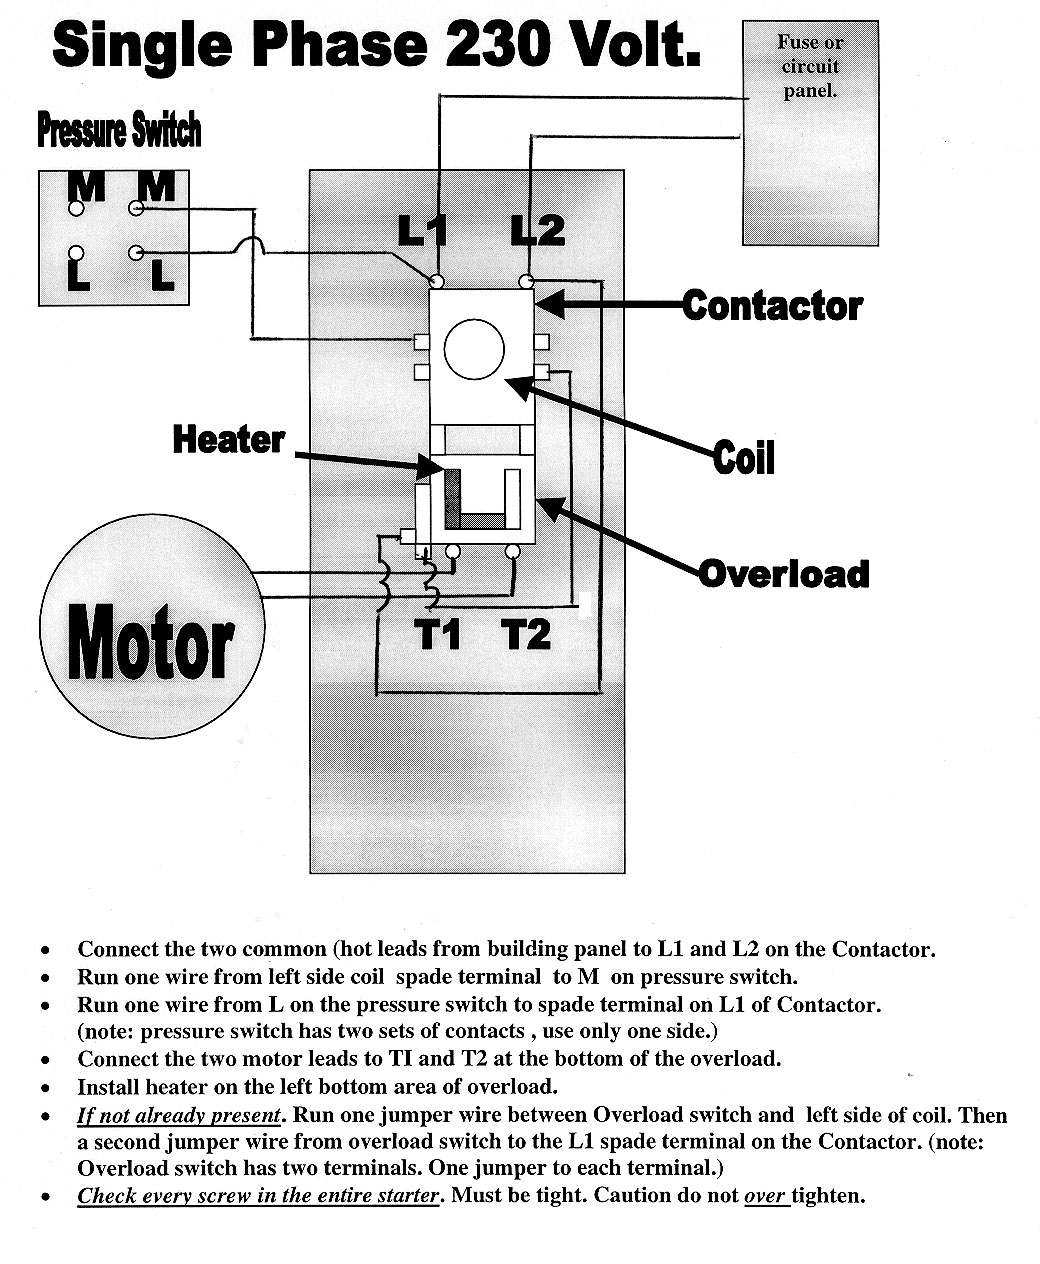 Tecumseh Compressor Wiring Diagram from wholefoodsonabudget.com